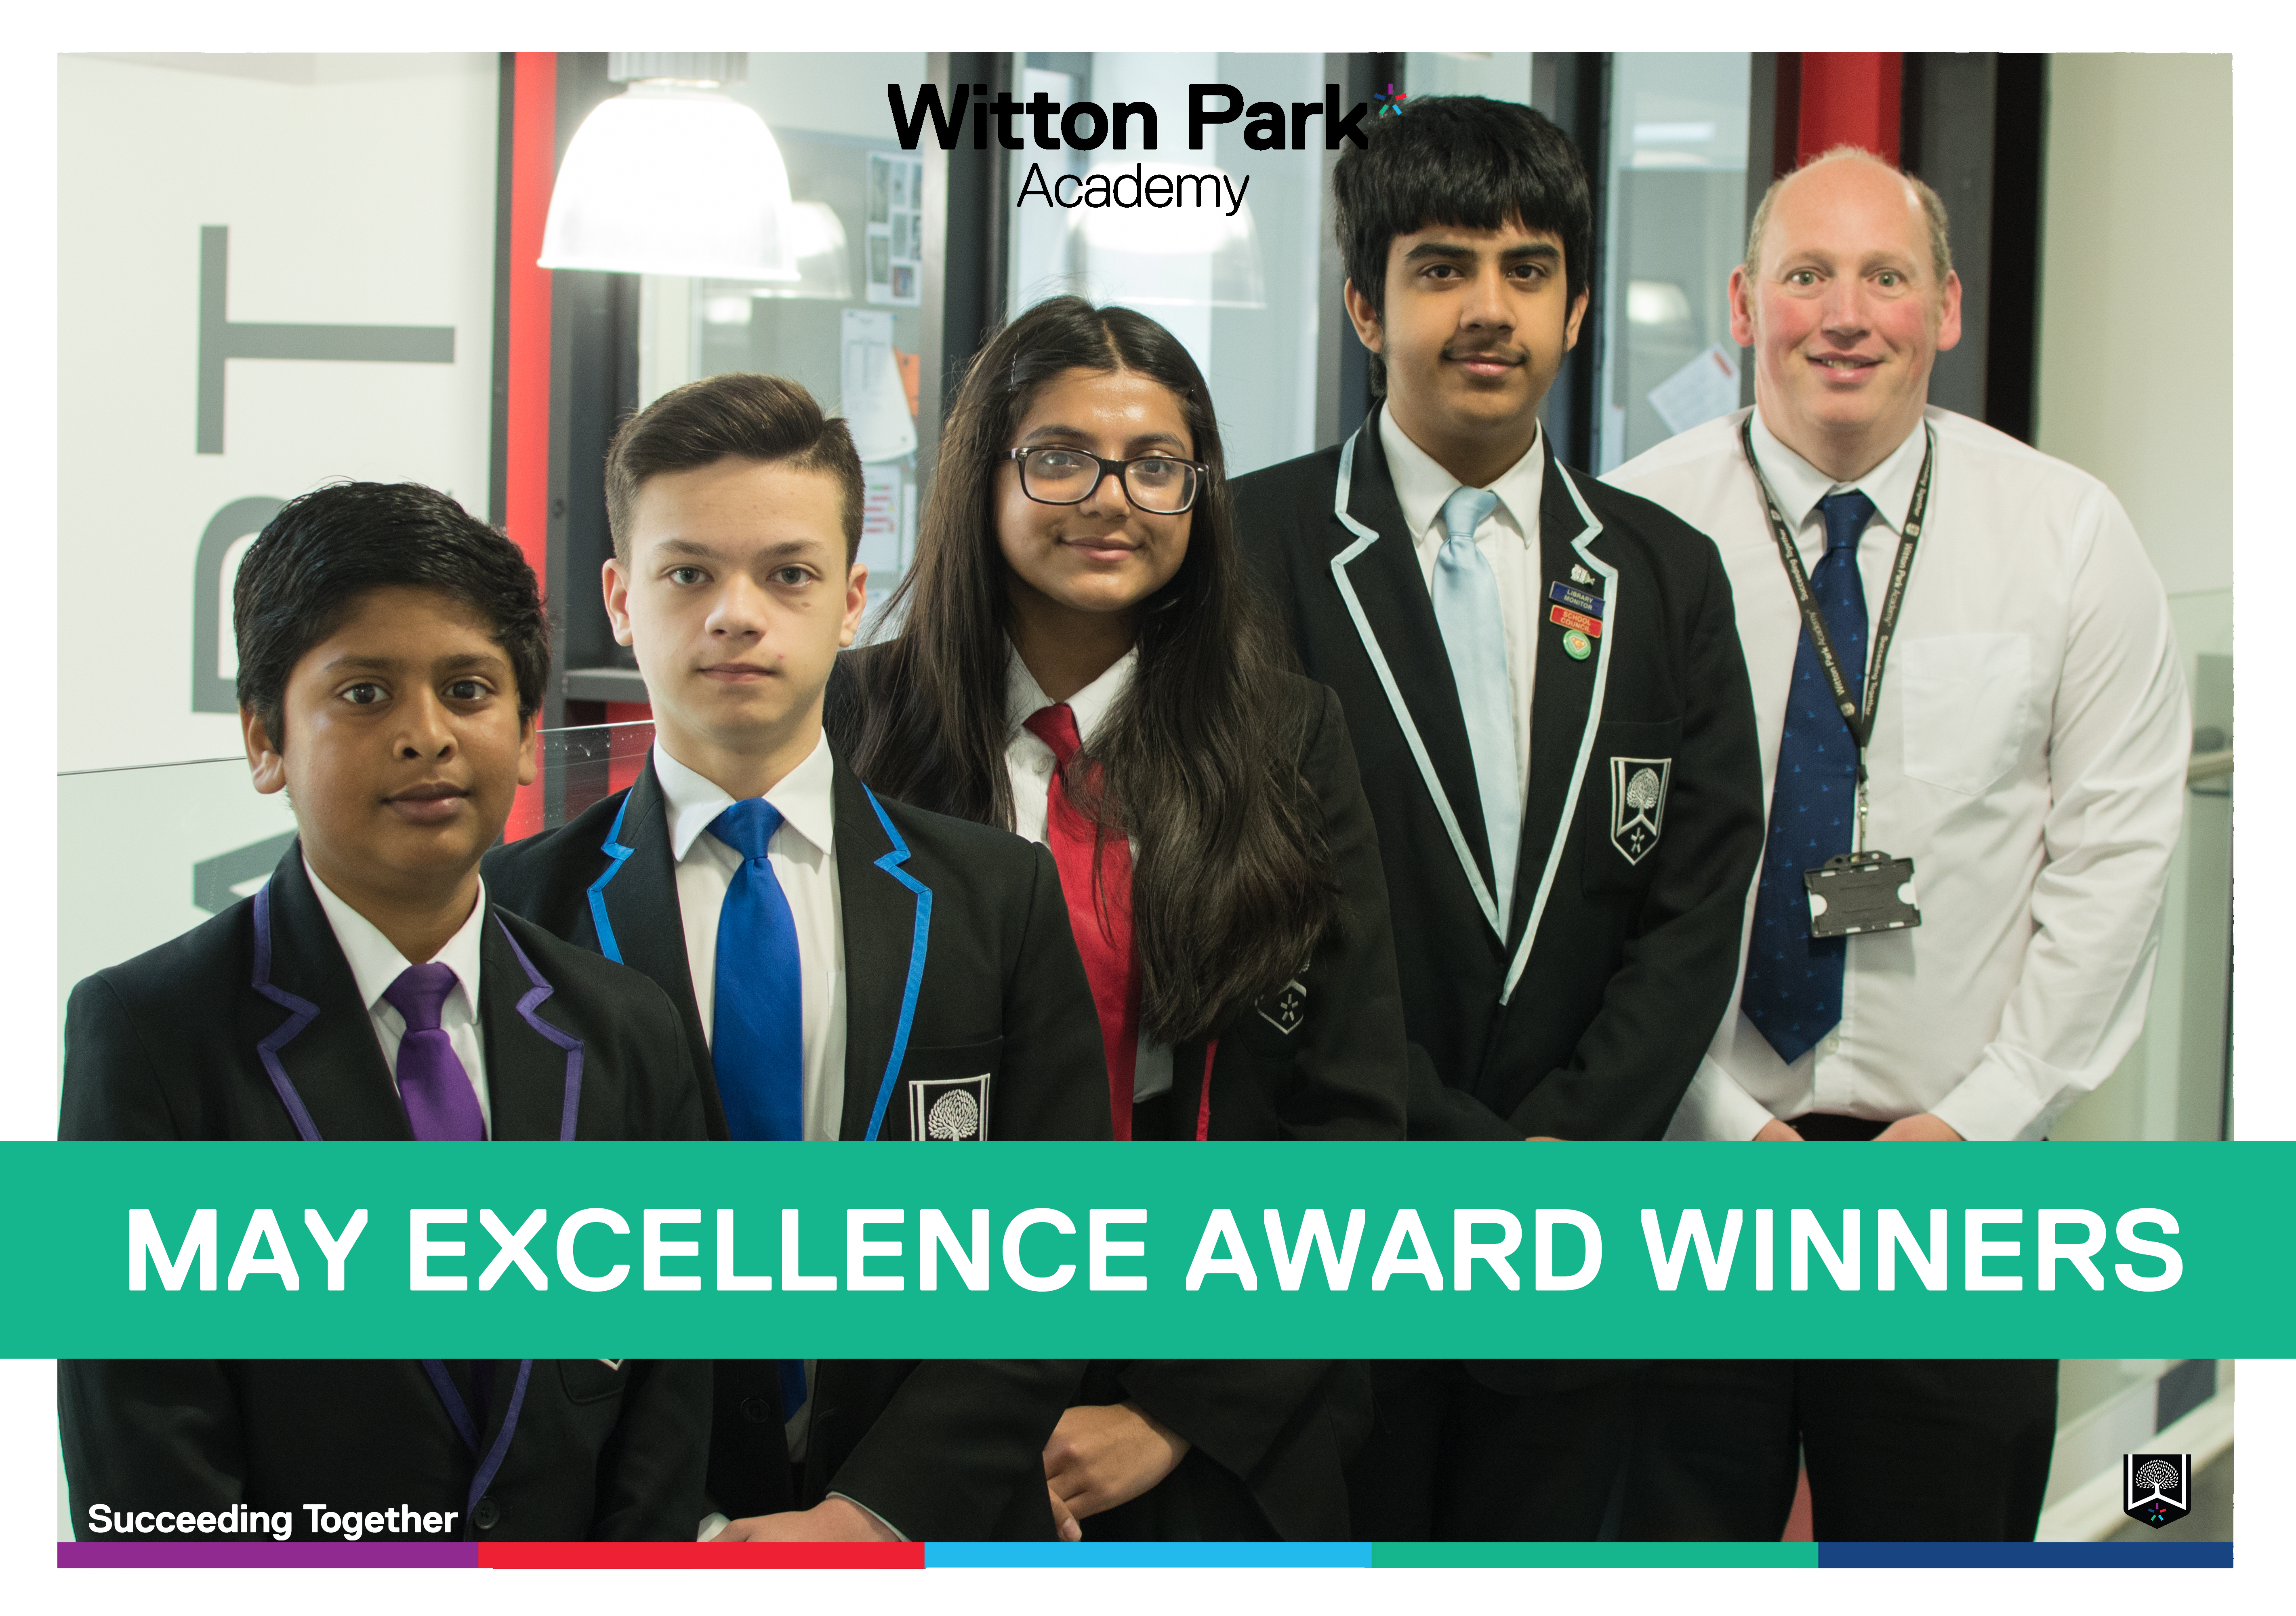 Well done to this month's excellence awards winners